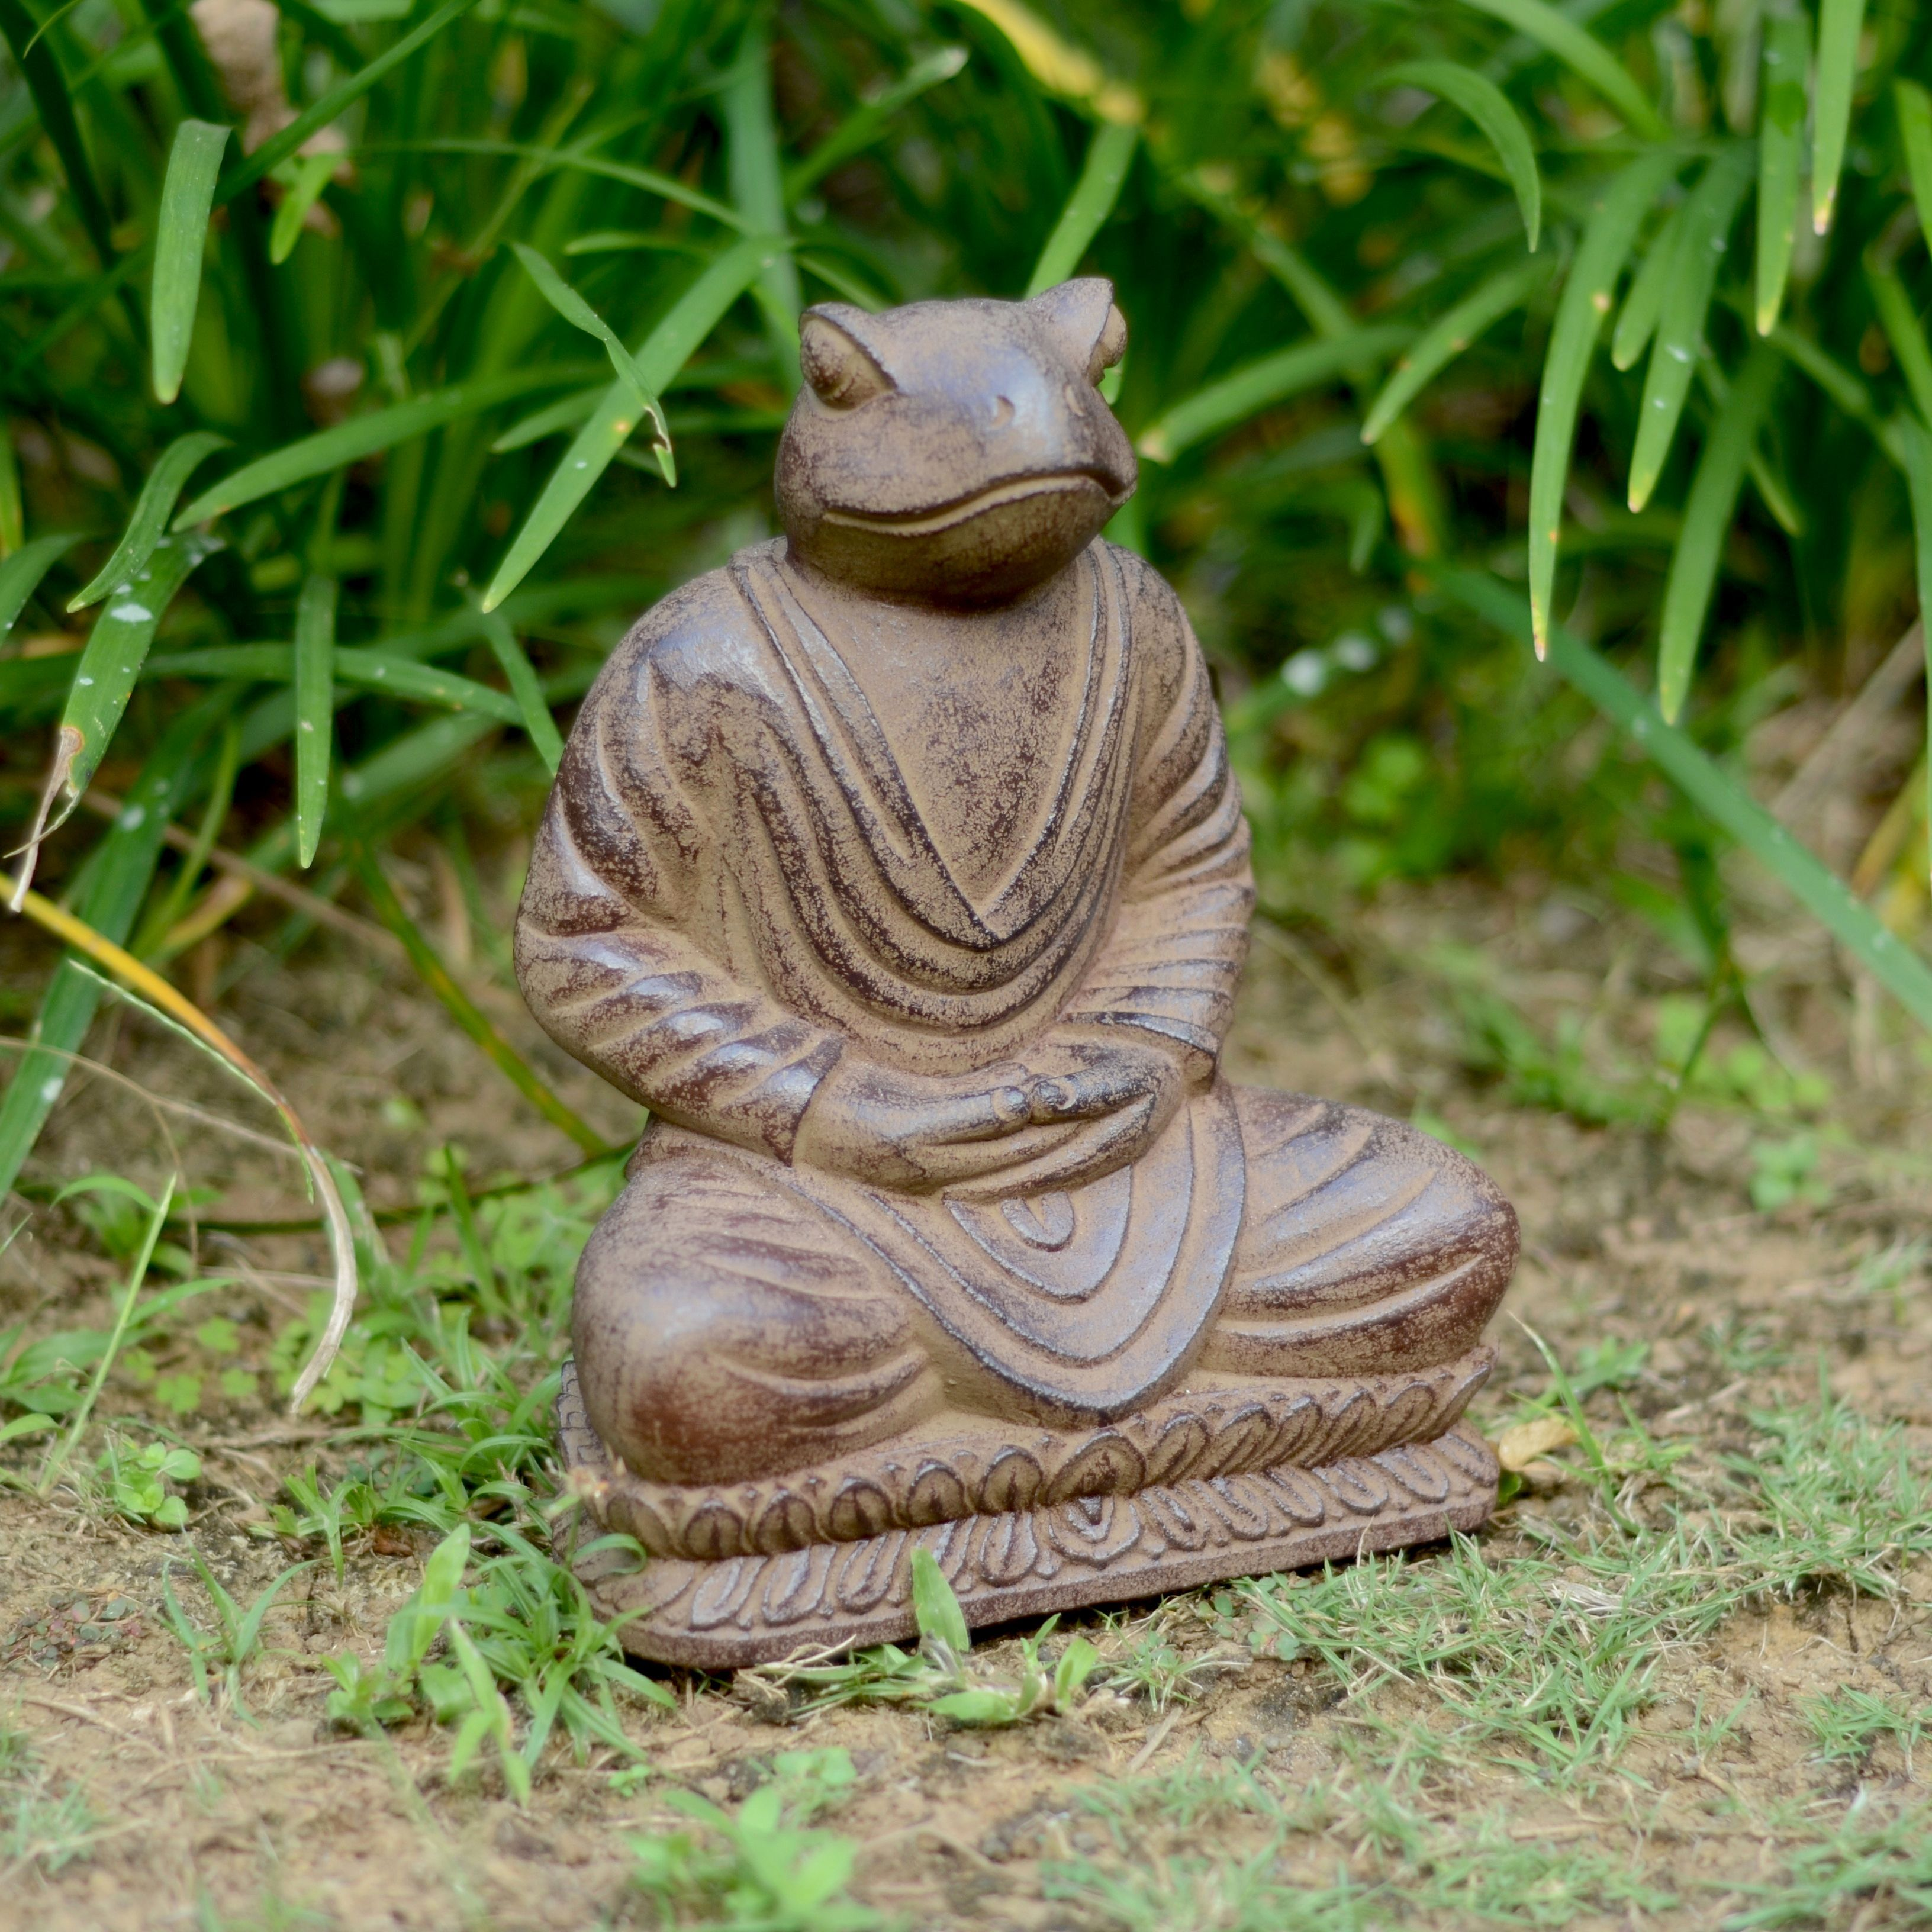 Volcanic Ash Black Meditating Frog Statue Handmade In Indonesia Stone Outdoor Decor Frog Statues Handmade Statue Garden Frogs